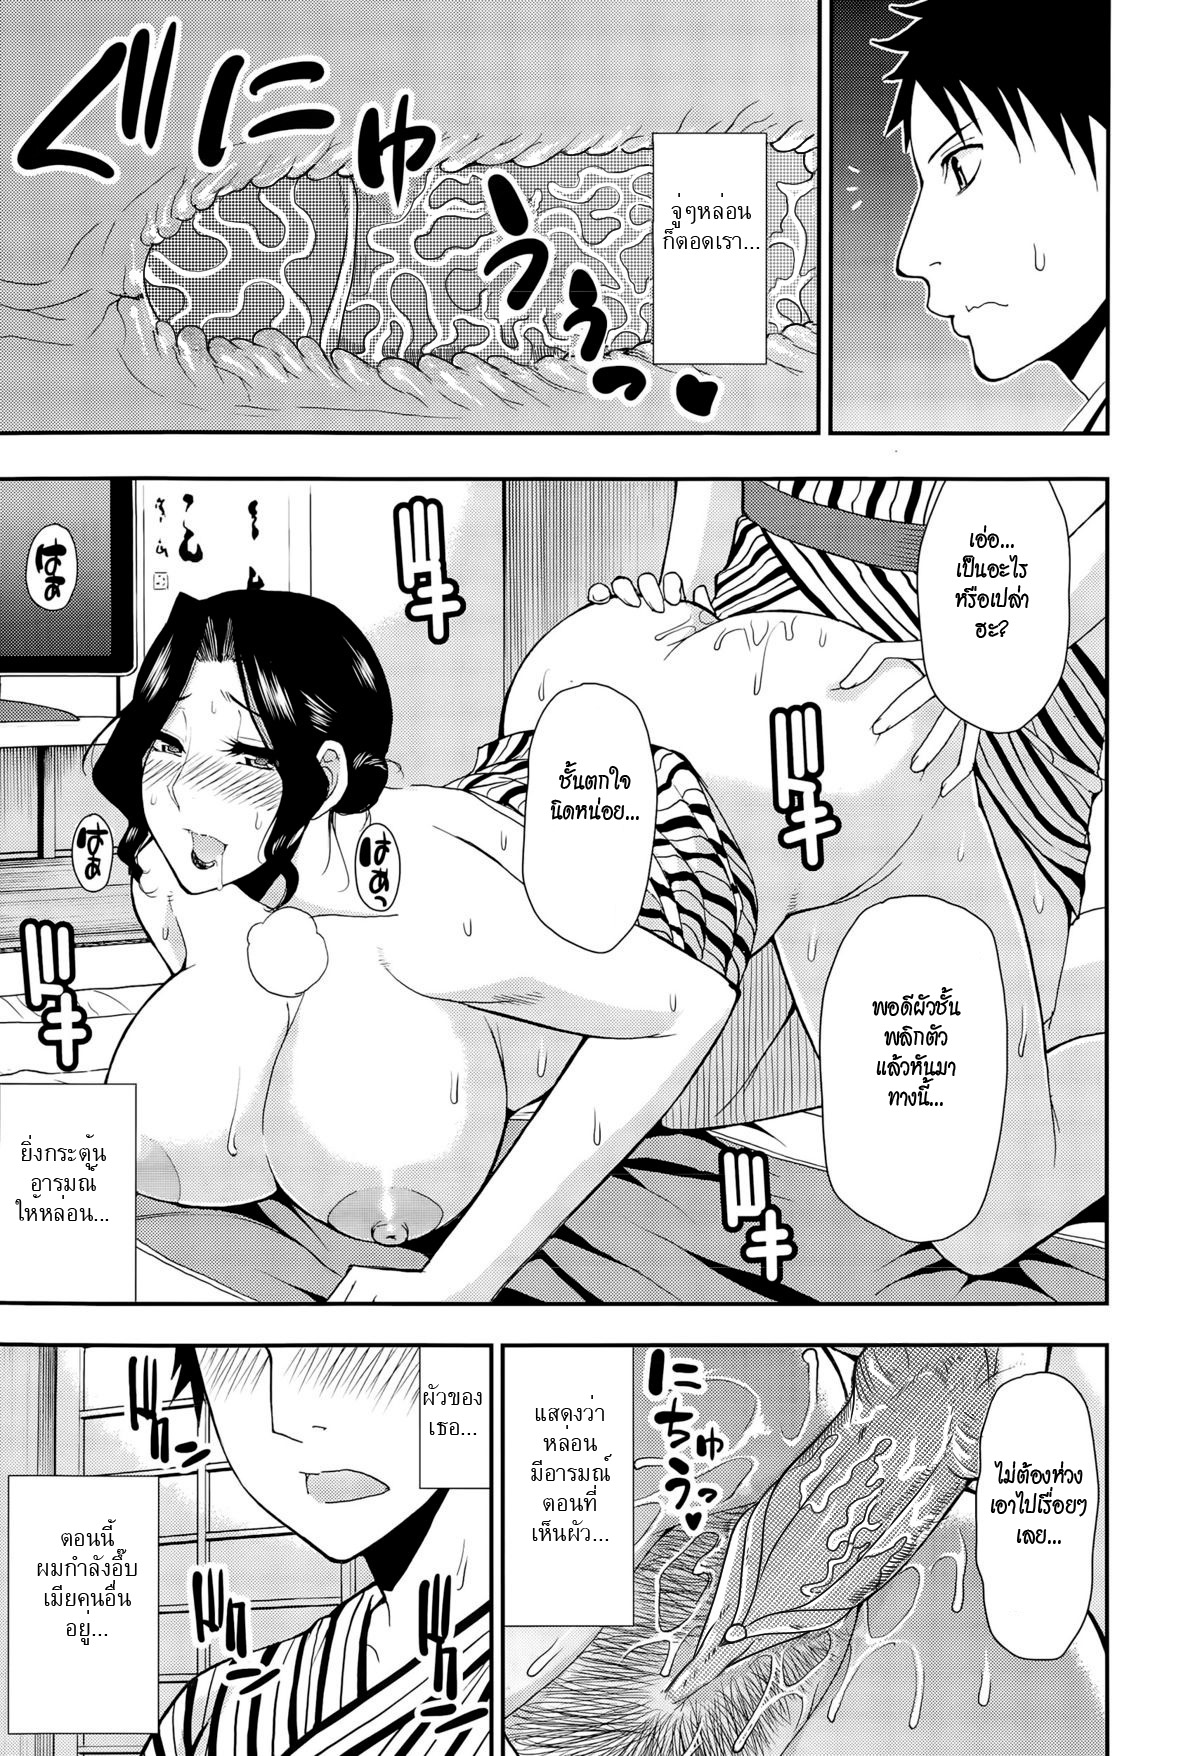 Tabi no Haji wa Kakisute Once You're Away From Home You can do anything. (COMIC Mugen Tensei 2015-06) [Thai ภาษาไทย] [HypN♥s] [Decensored]